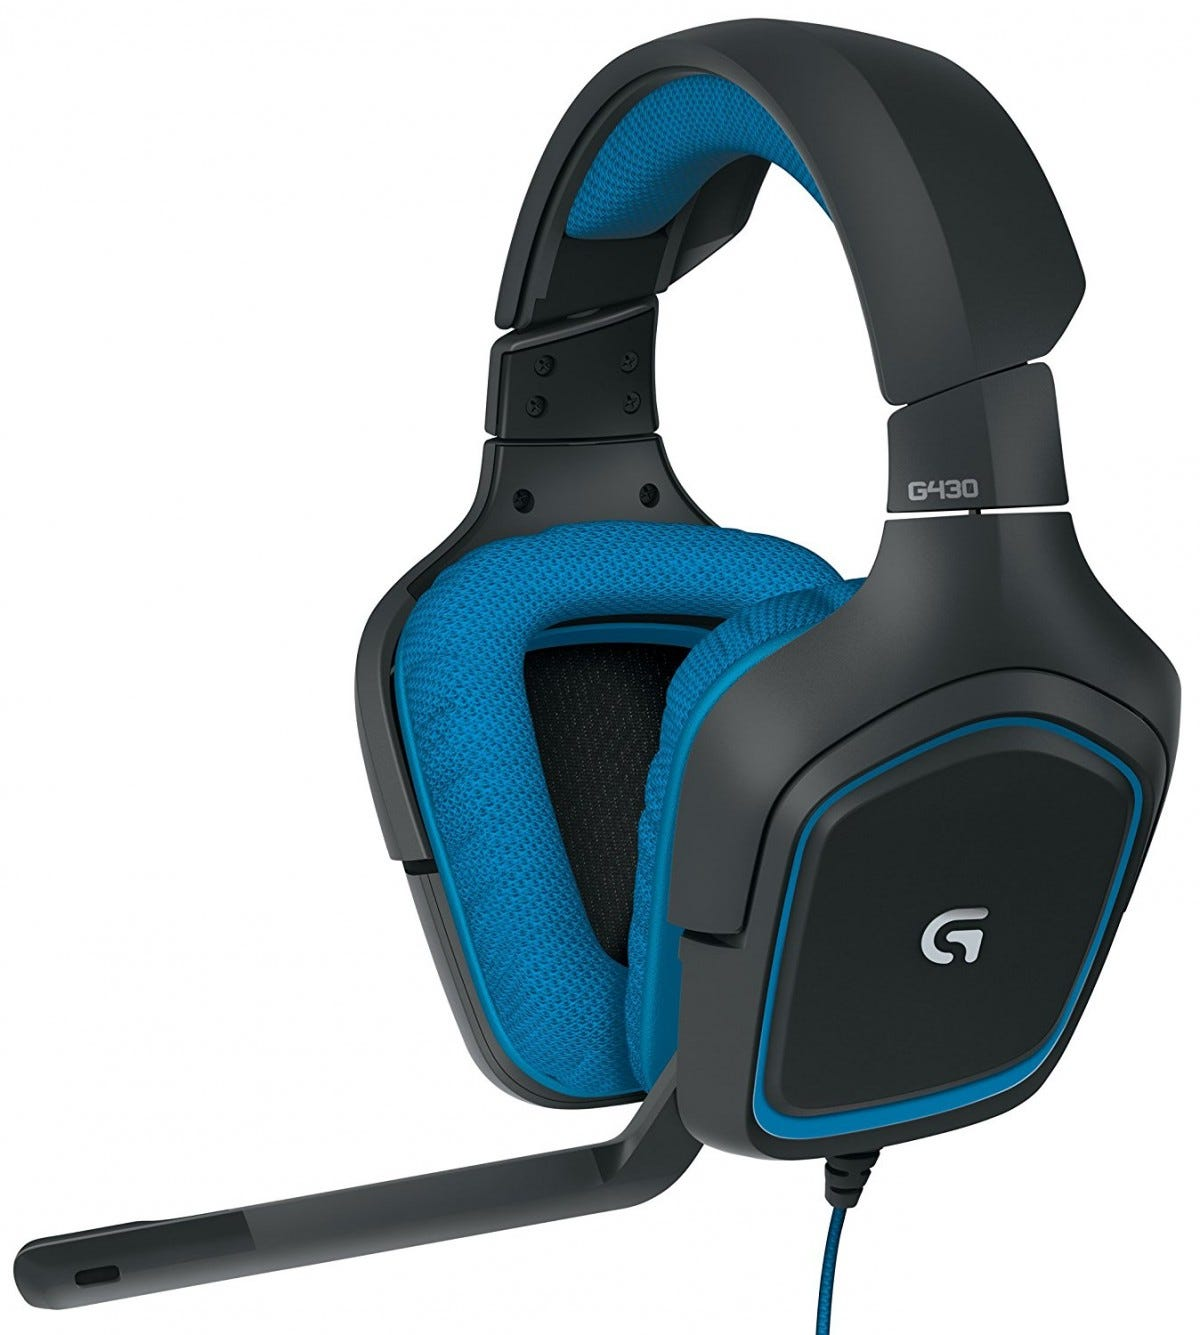 logitech, pc gaming, pc headset, g430, surround sound,